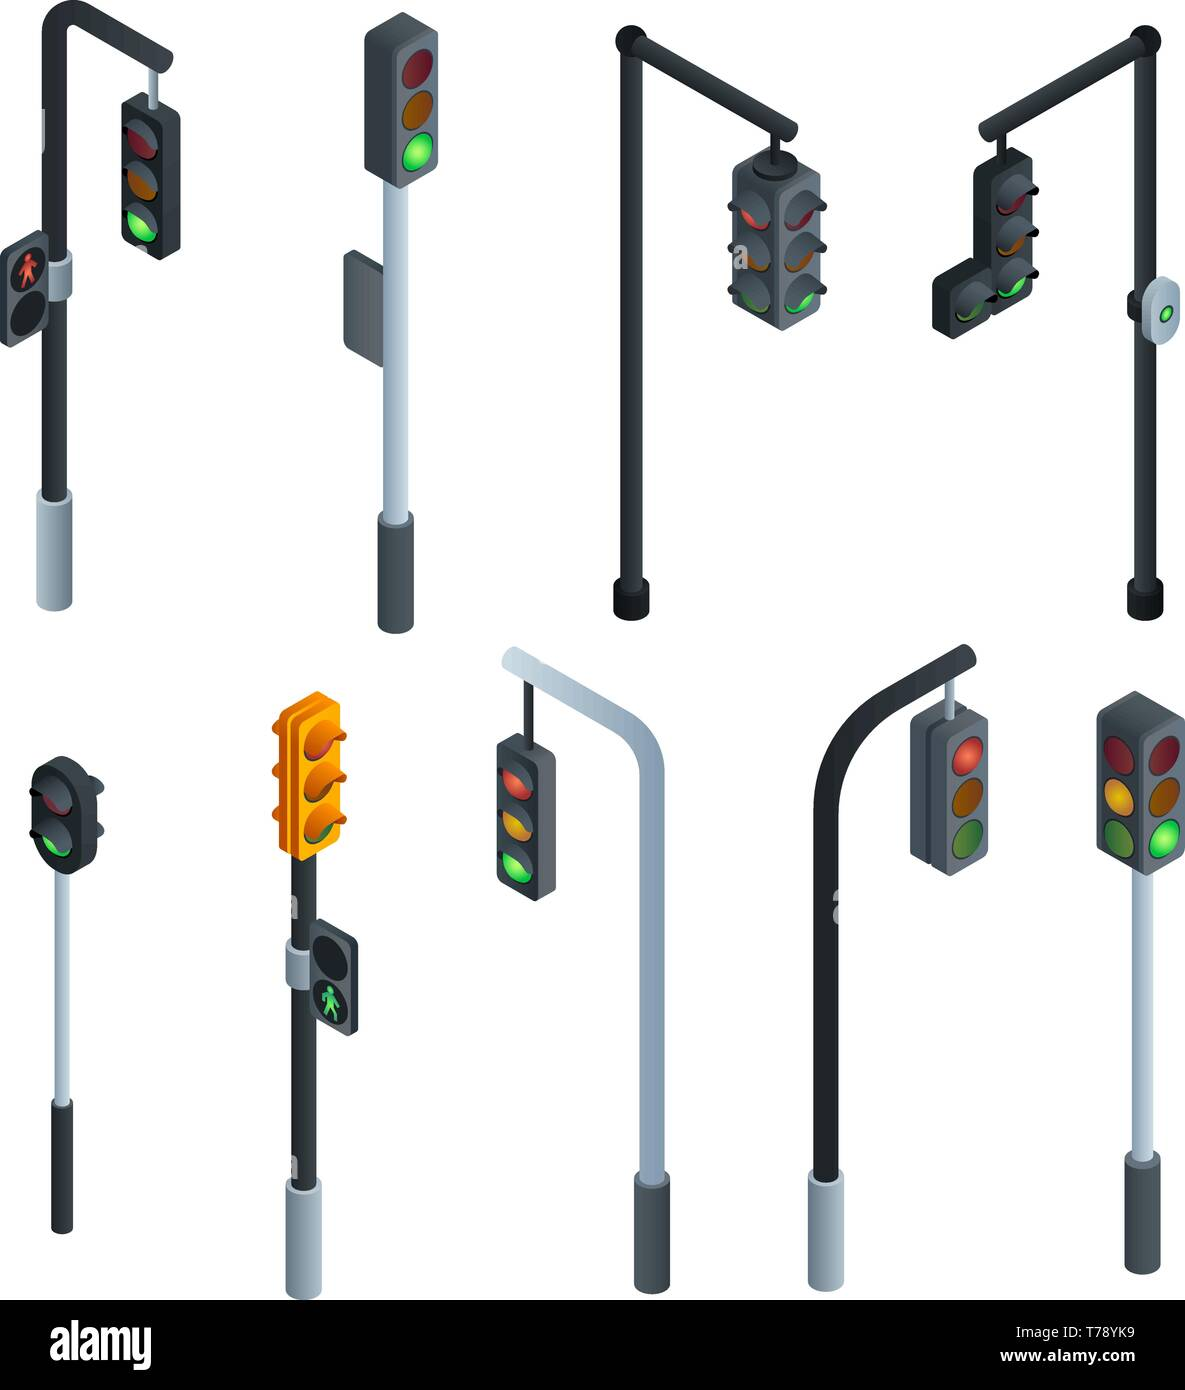 traffic lights icons set isometric set of traffic lights vector icons for web design isolated on white background stock vector image art alamy https www alamy com traffic lights icons set isometric set of traffic lights vector icons for web design isolated on white background image245445069 html